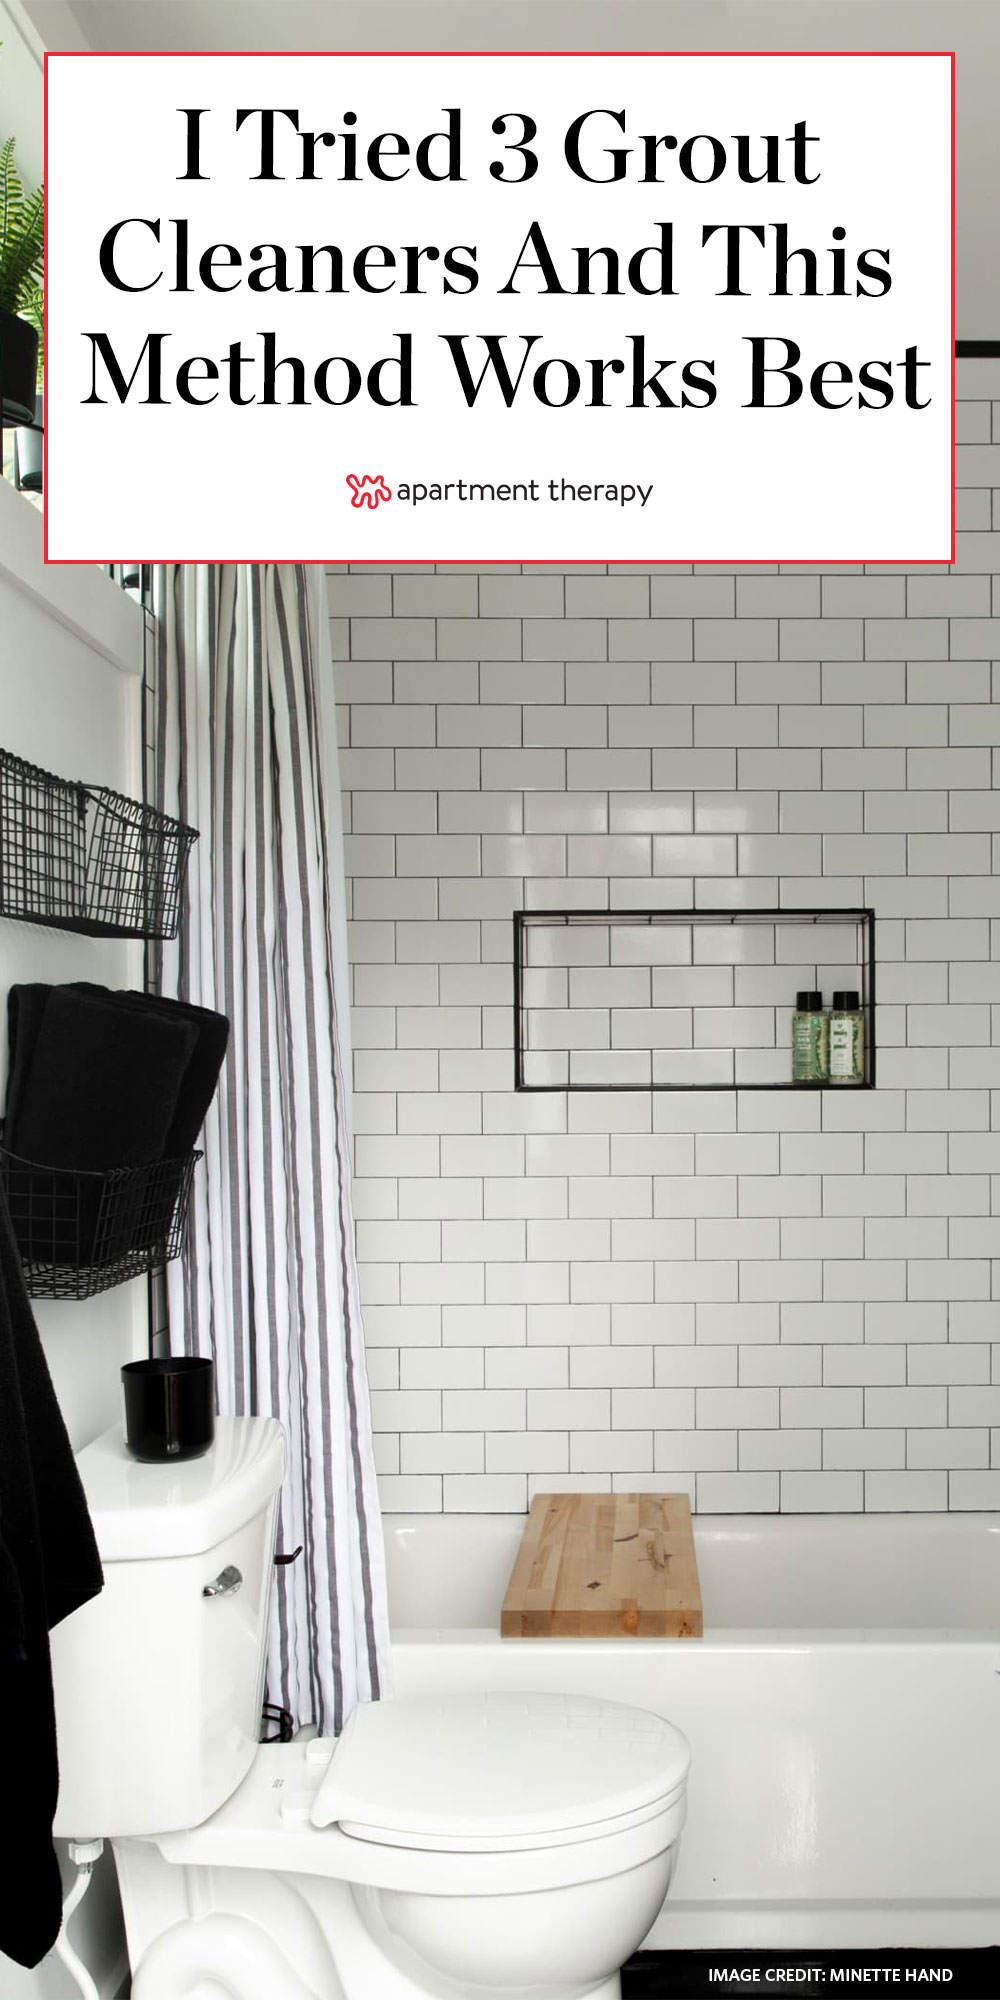 i tried 3 diy grout cleaners and one